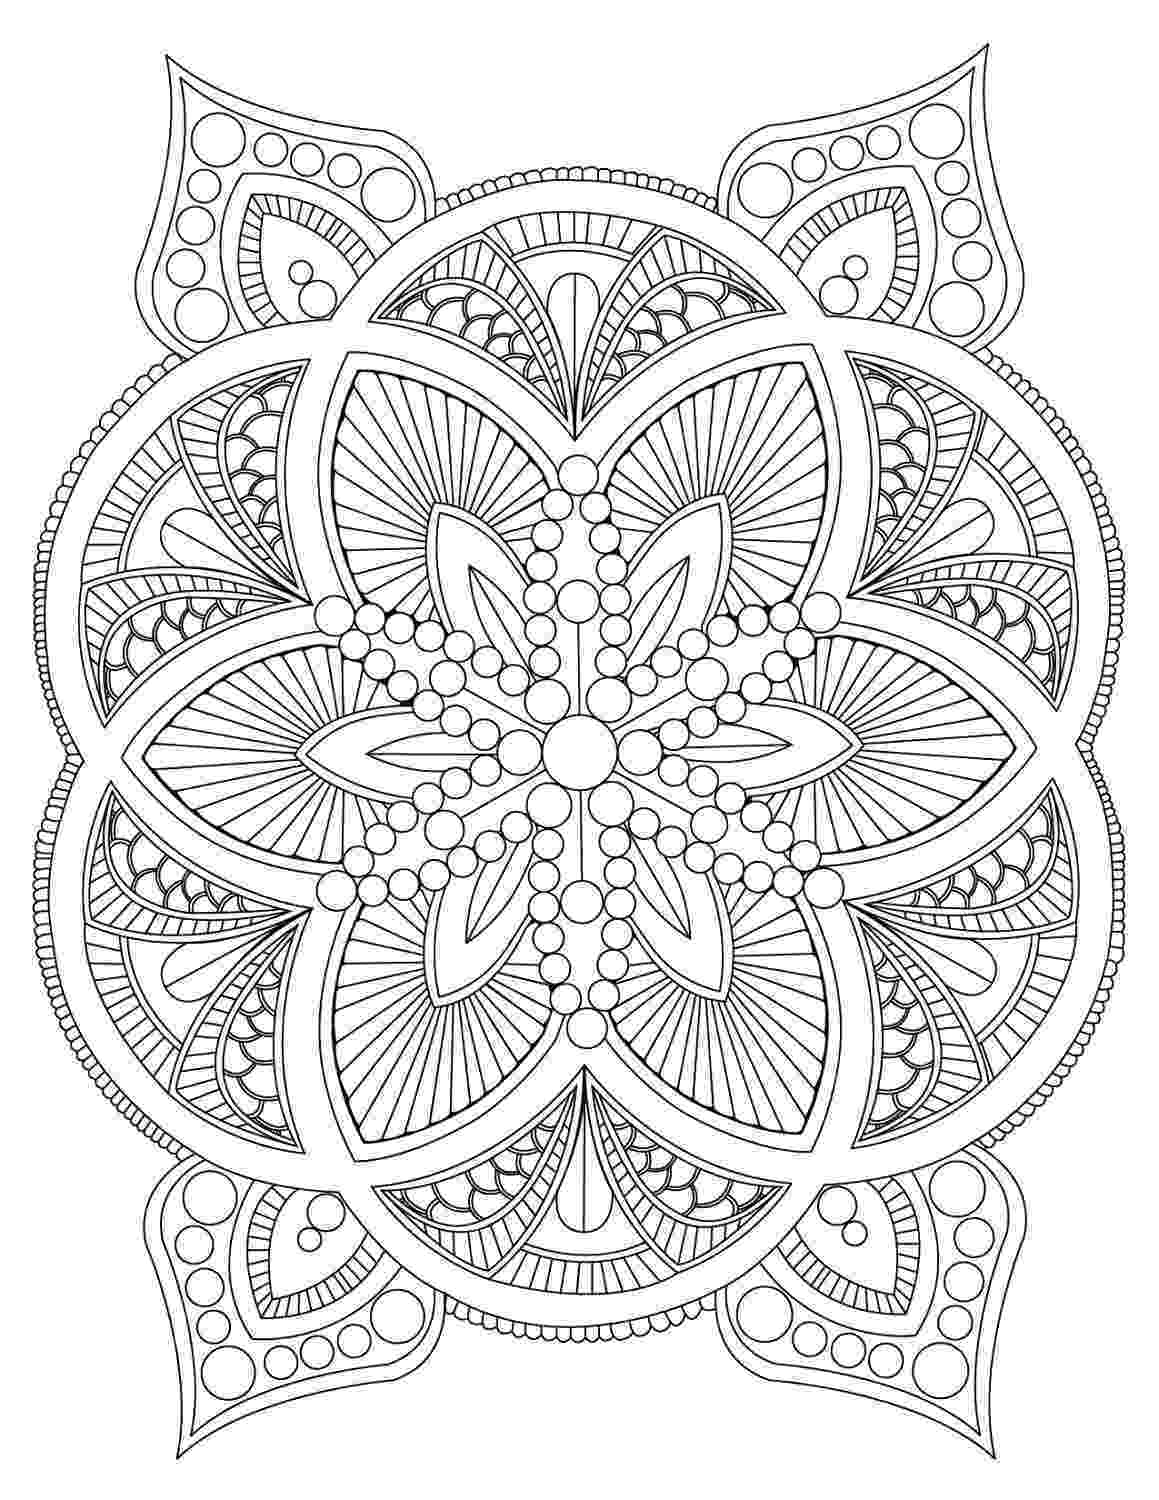 printable mandala coloring pages for adults printable mandalas for adults coloring printable for pages mandala adults